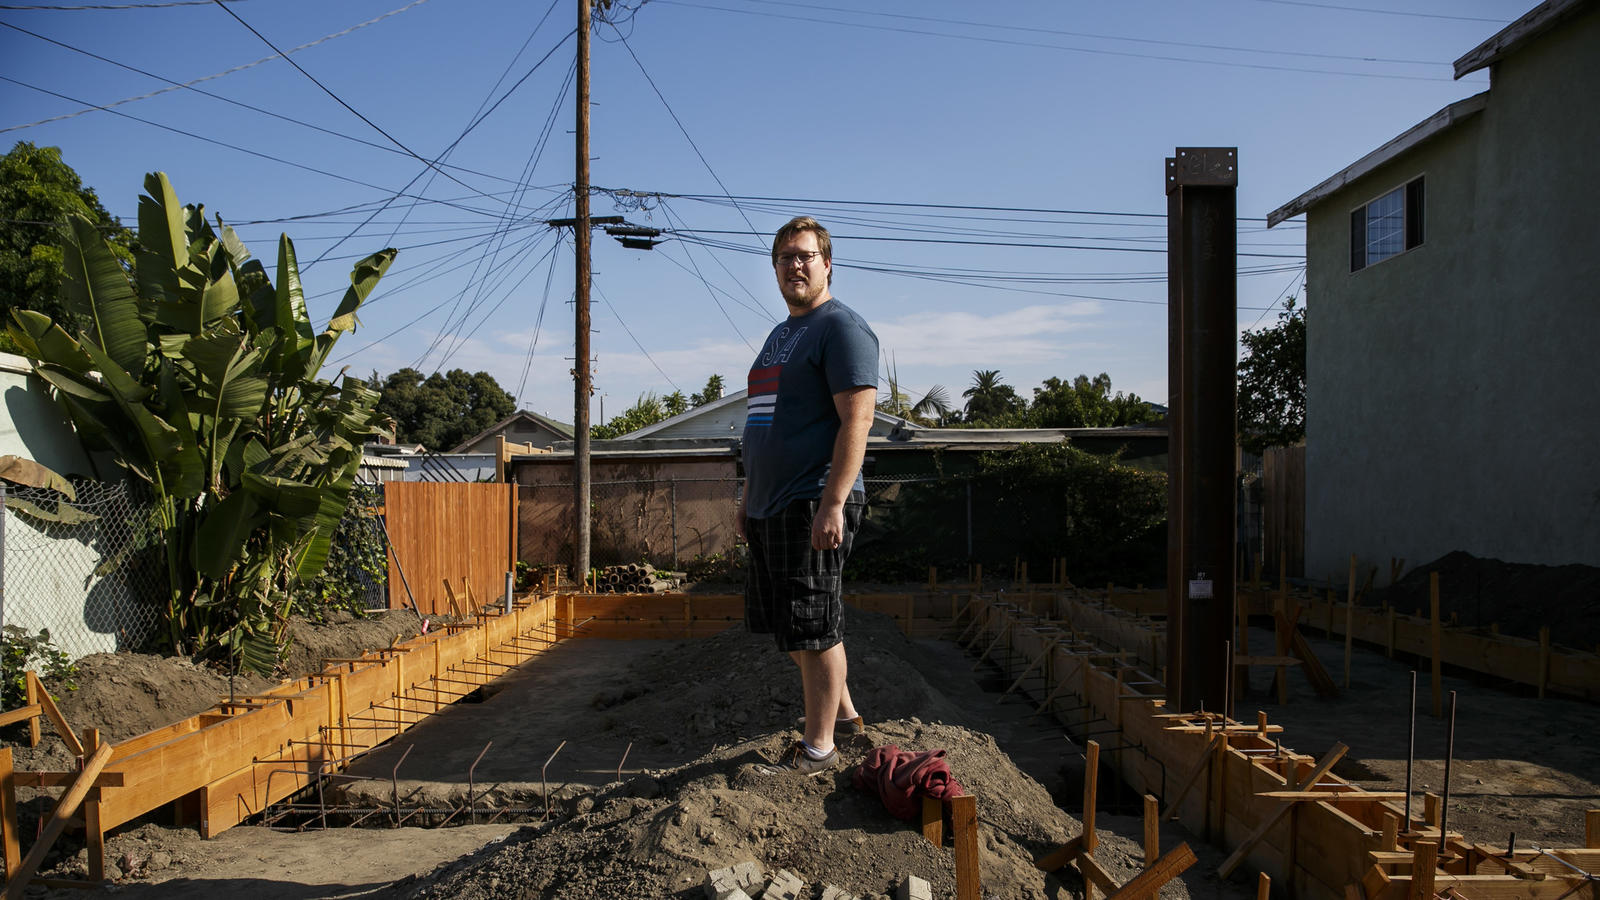 John Gregorchuk stands amid construction of a secondary dwelling unit that has been stalled in his backyard in Los Angeles. (Marcus Yam / Los Angeles Times)